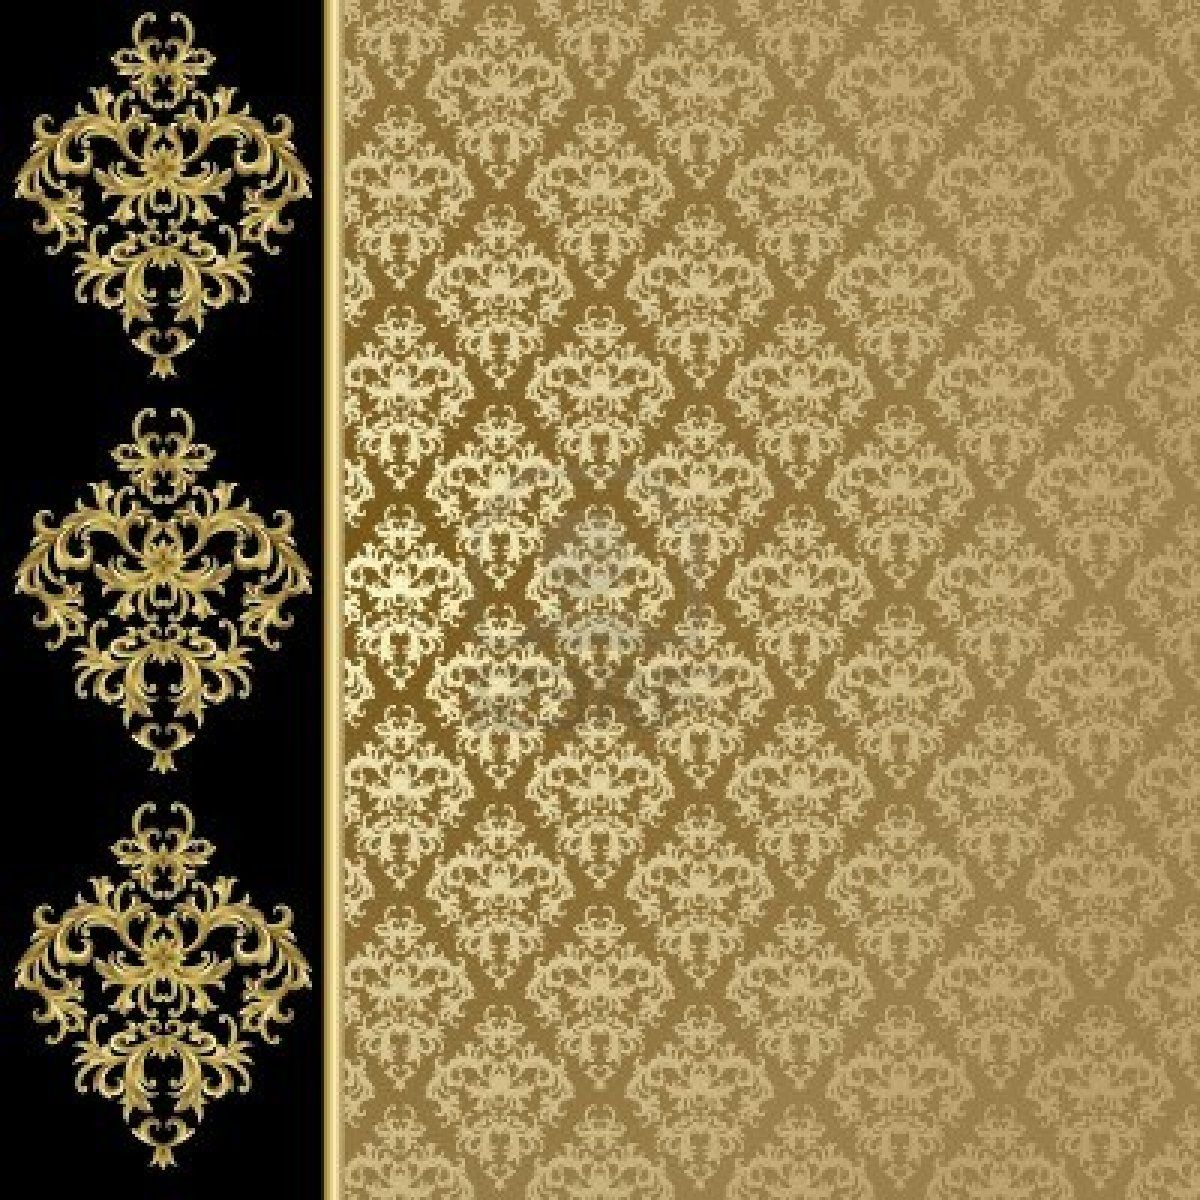 Golden Design Wallpaper : Black and gold background with abstract plant stock photo